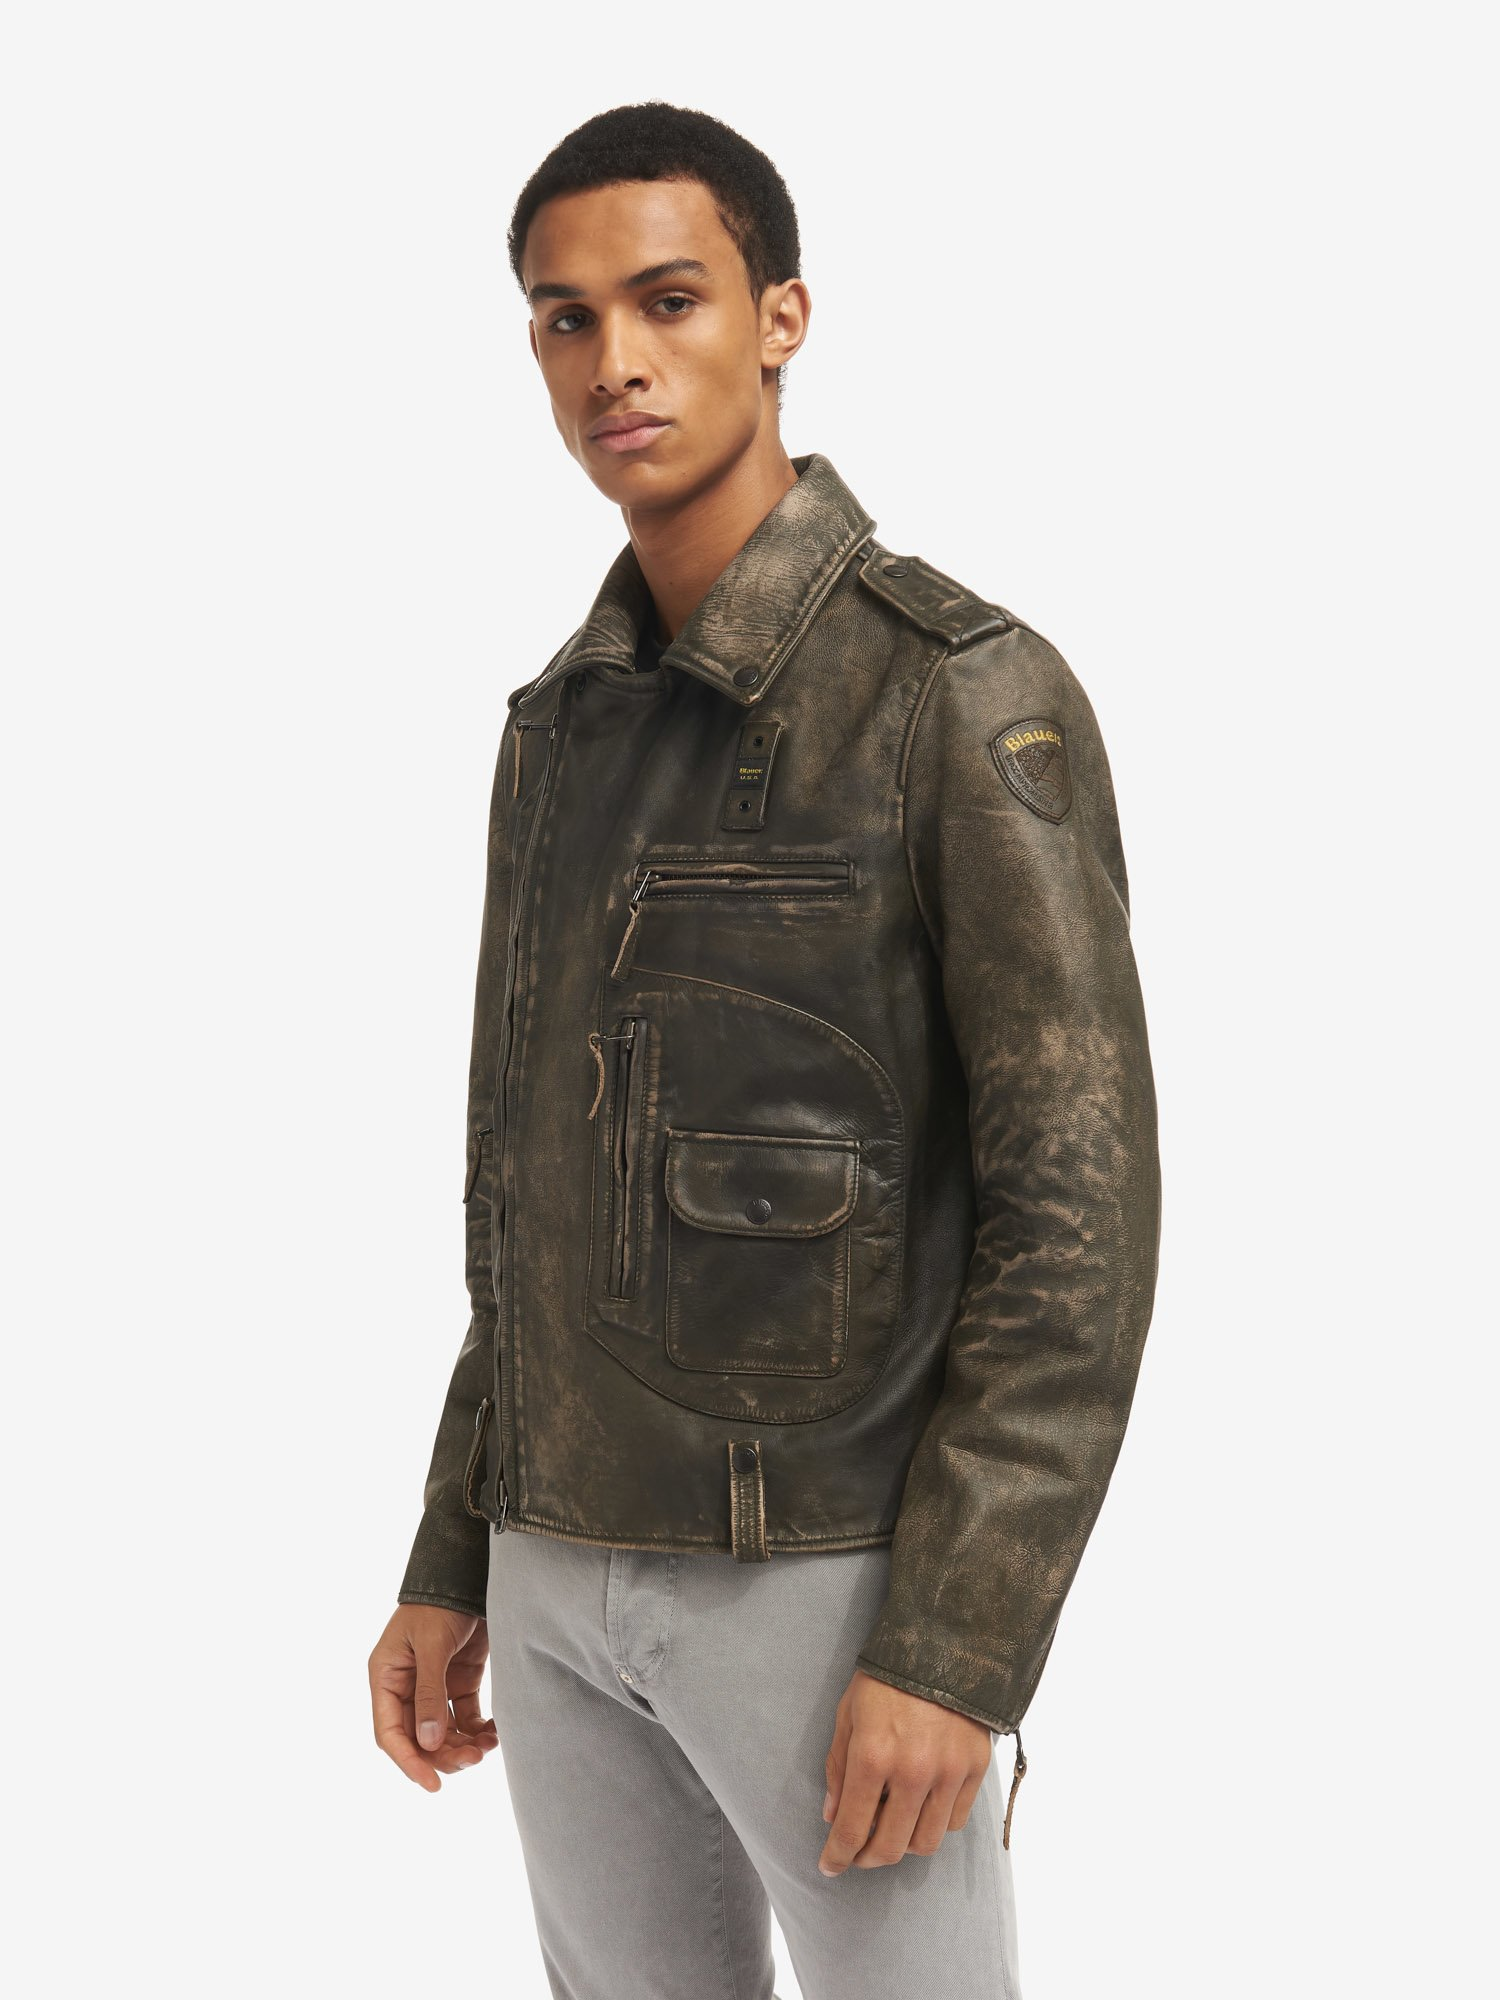 CHIODO VINTAGE IN PELLE TOMMY - Blauer